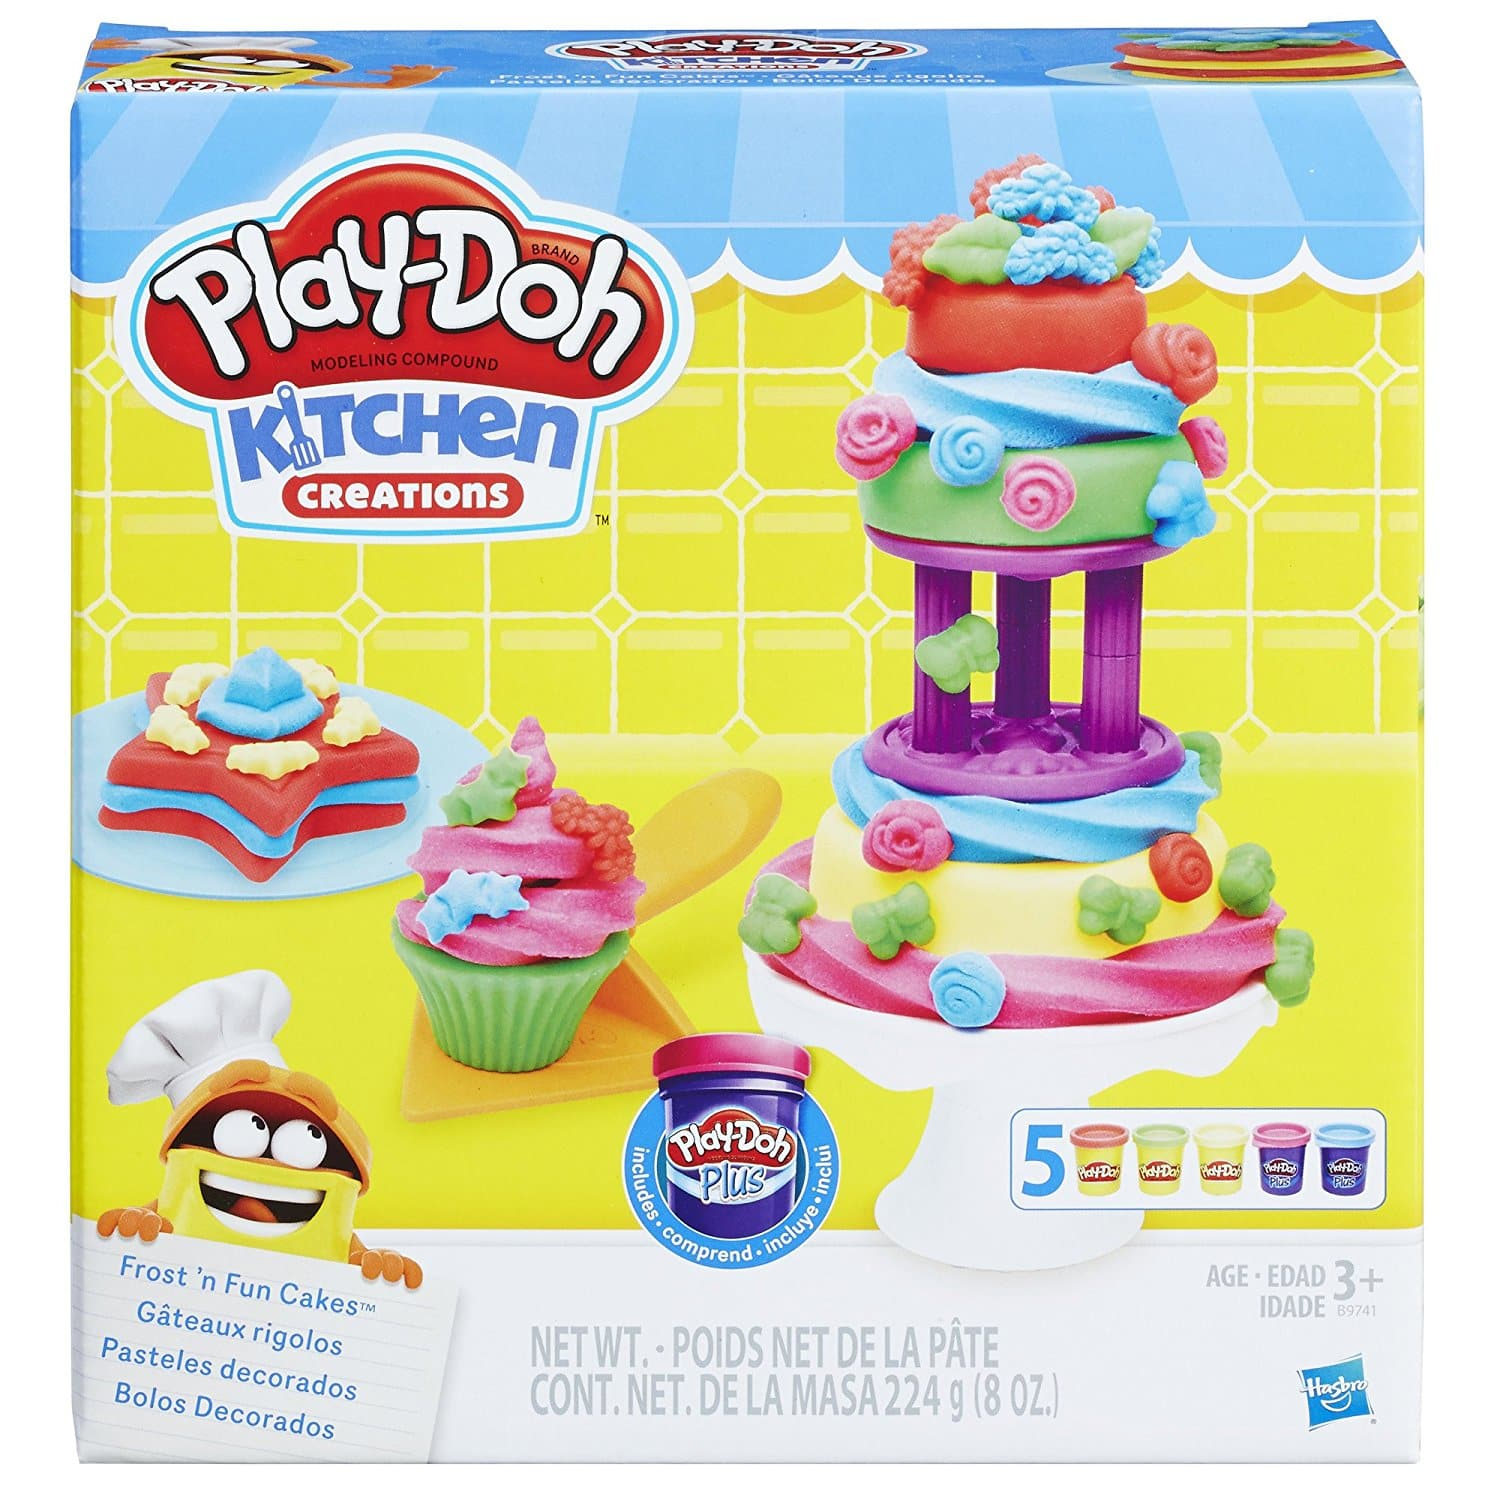 Play-Doh Kitchen Creations Frost 'n Fun Cakes - Amazon Add-On $4.88